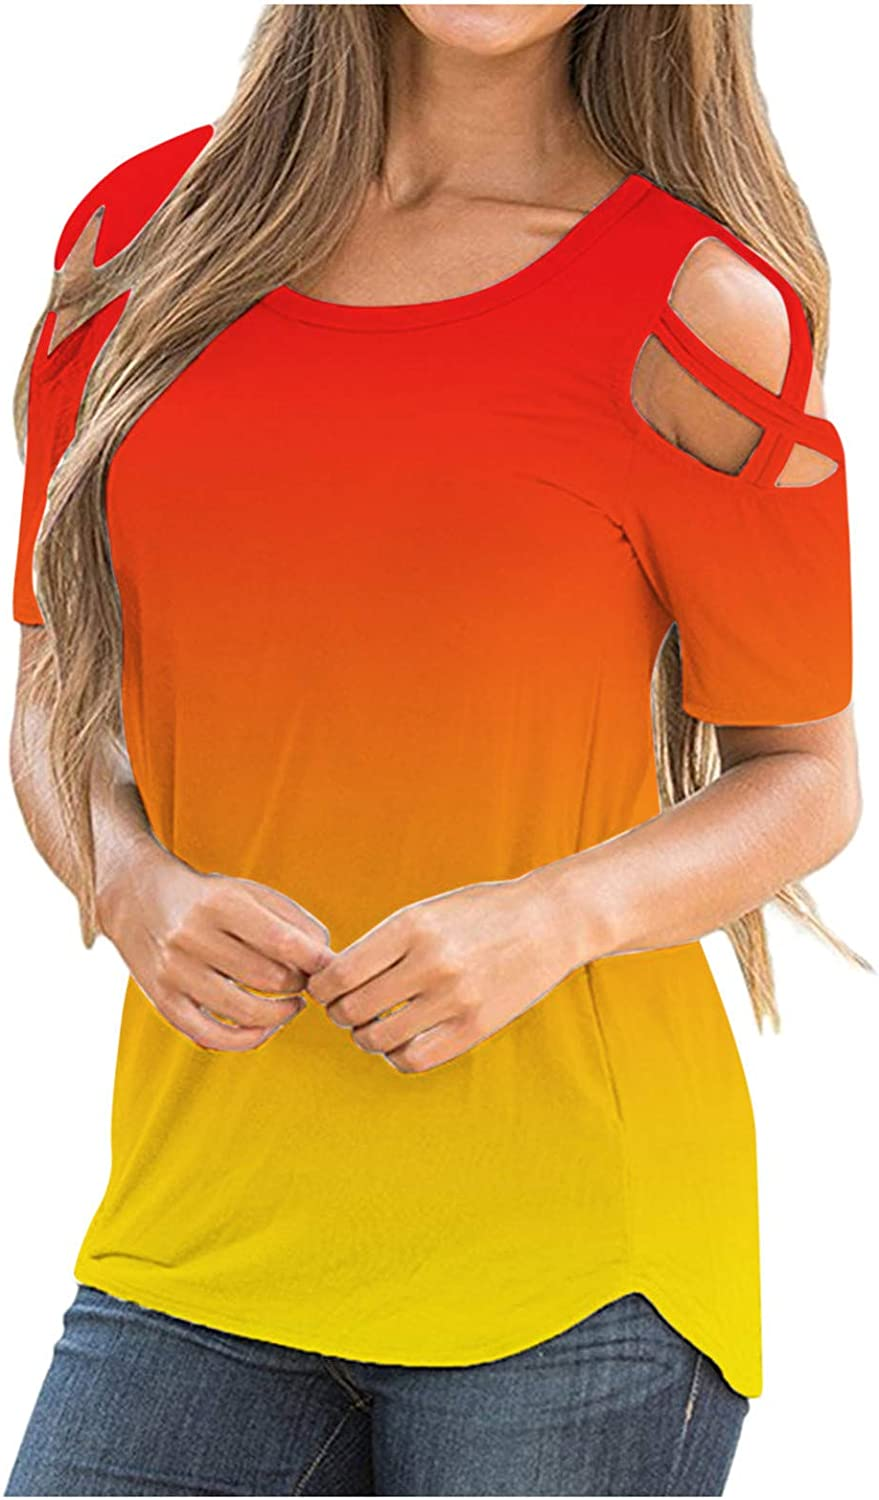 Women's Summer T Shirts Fashion Gradient Color Short Sleeve Tie Up Cold Shoulder Casual Tee Top